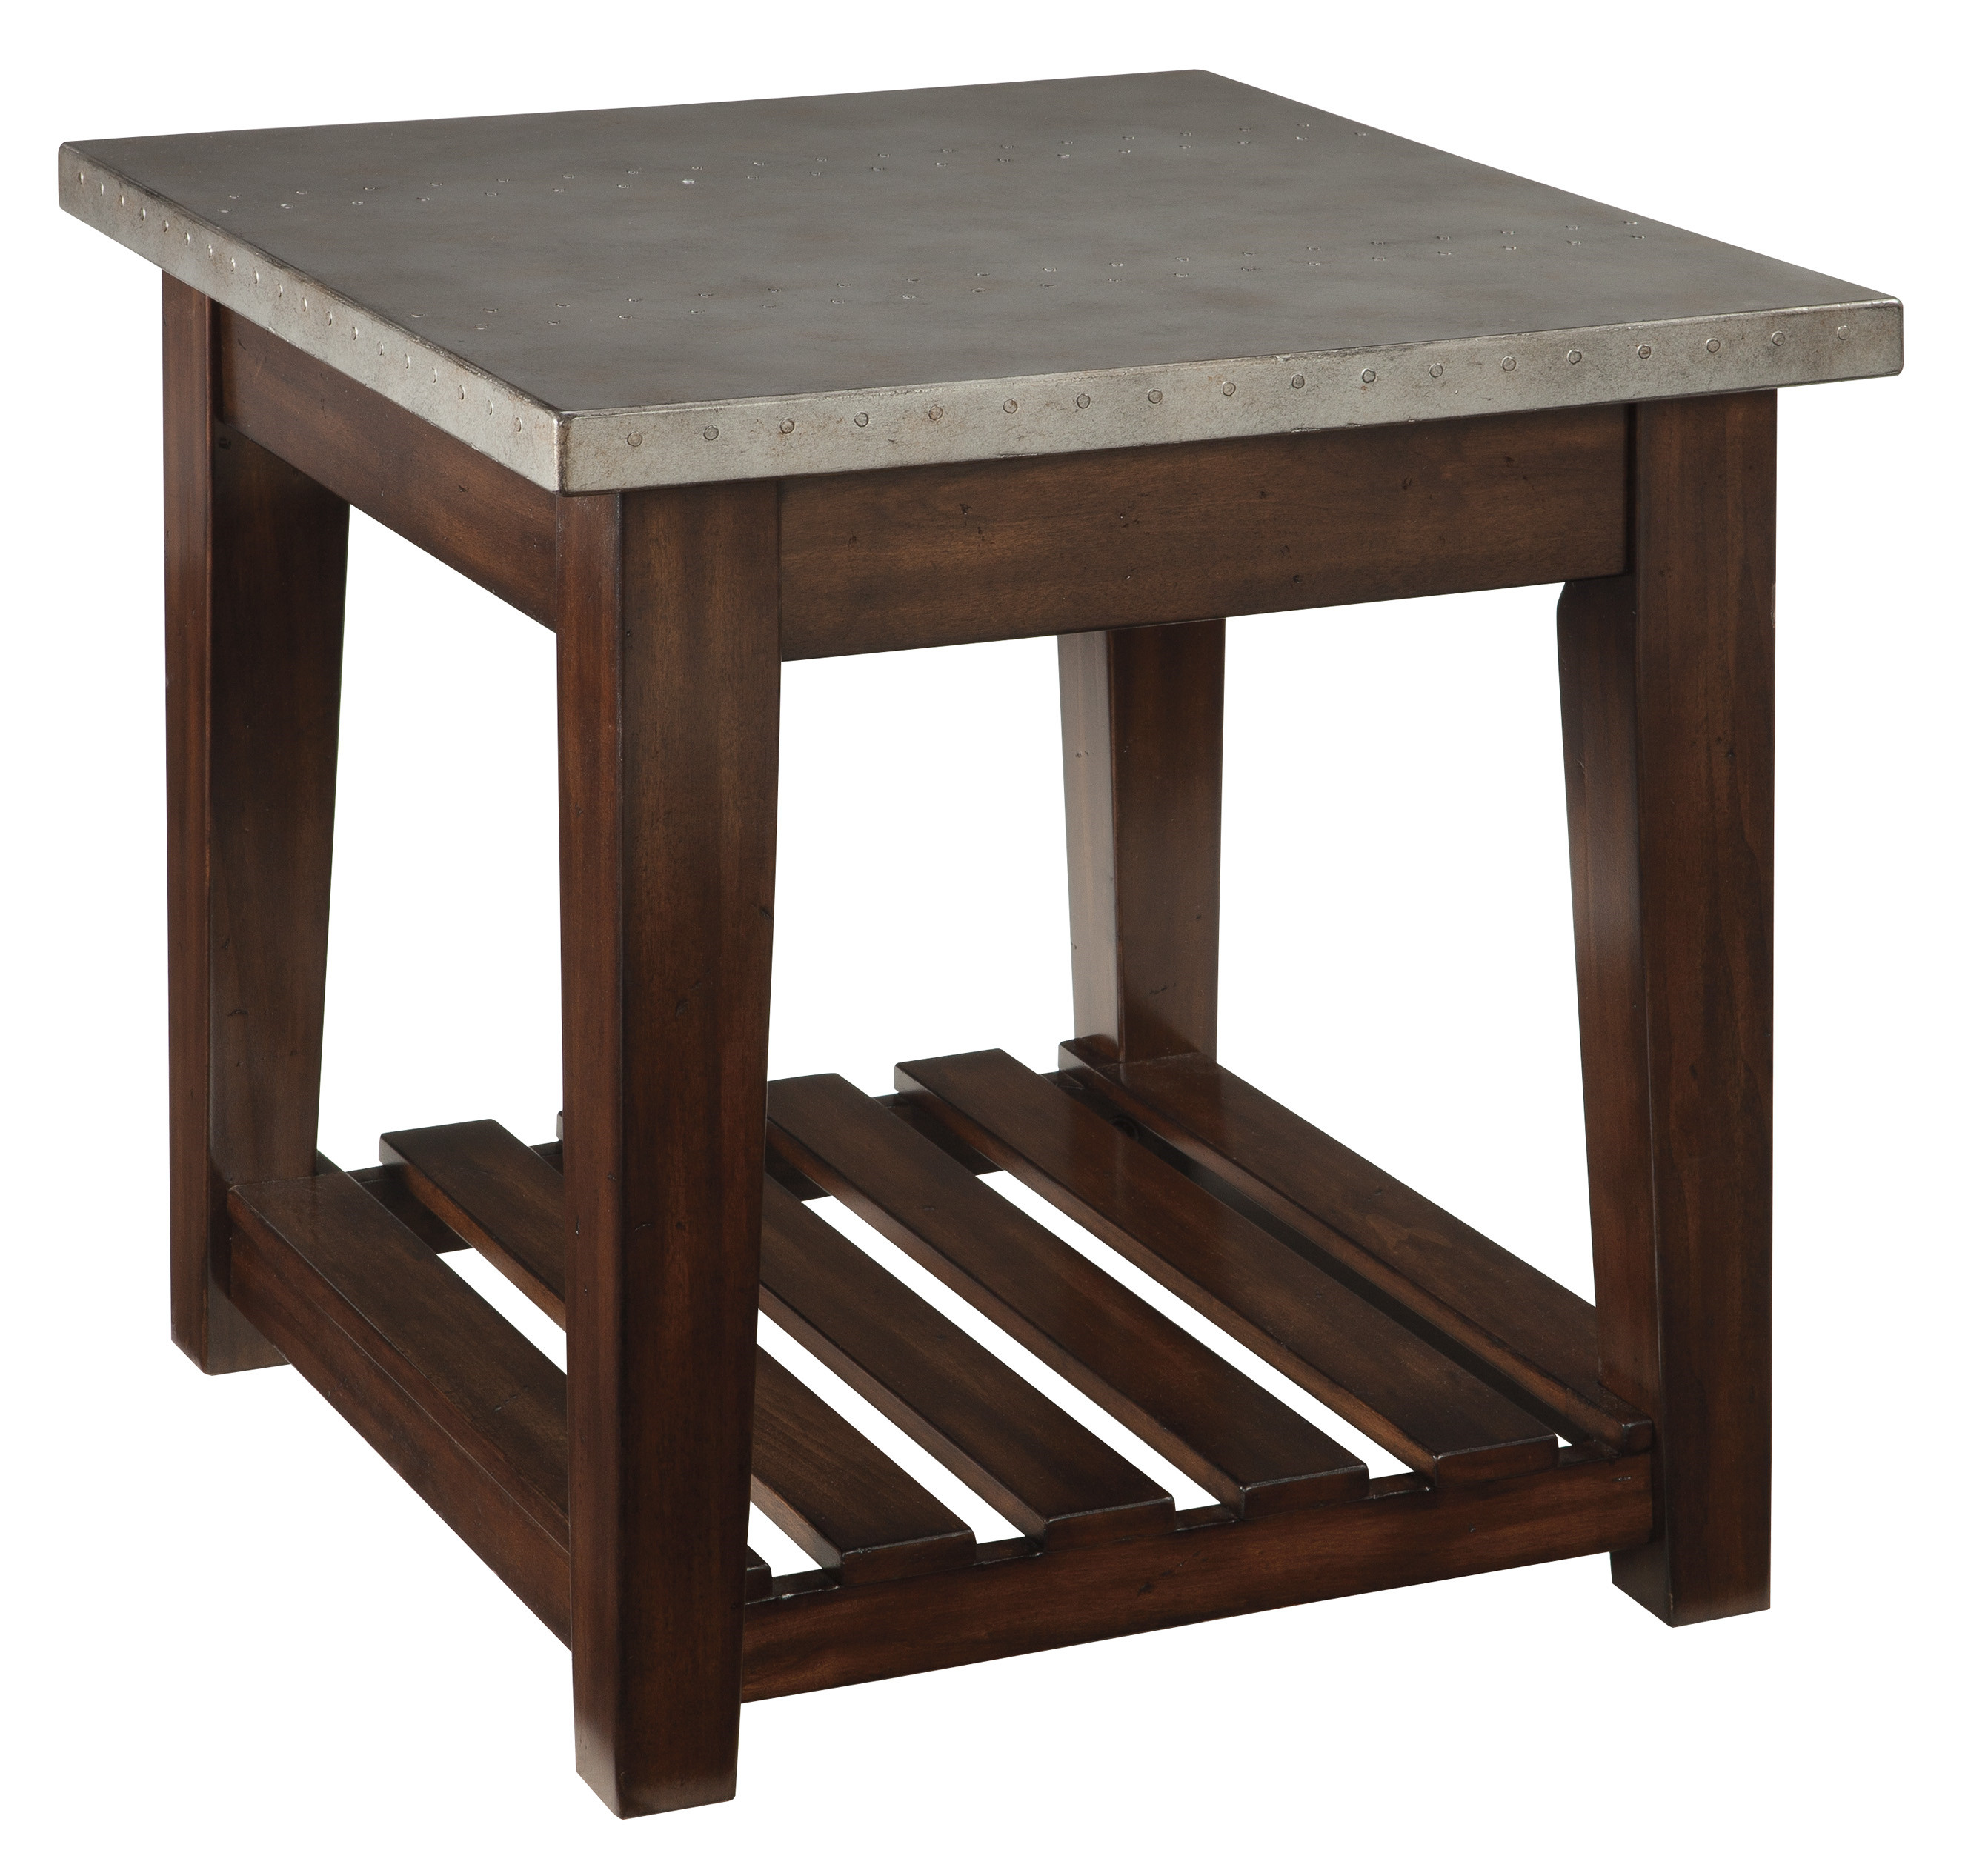 Ashley Furniture Bynderman Rectangular End Table The Classy Home